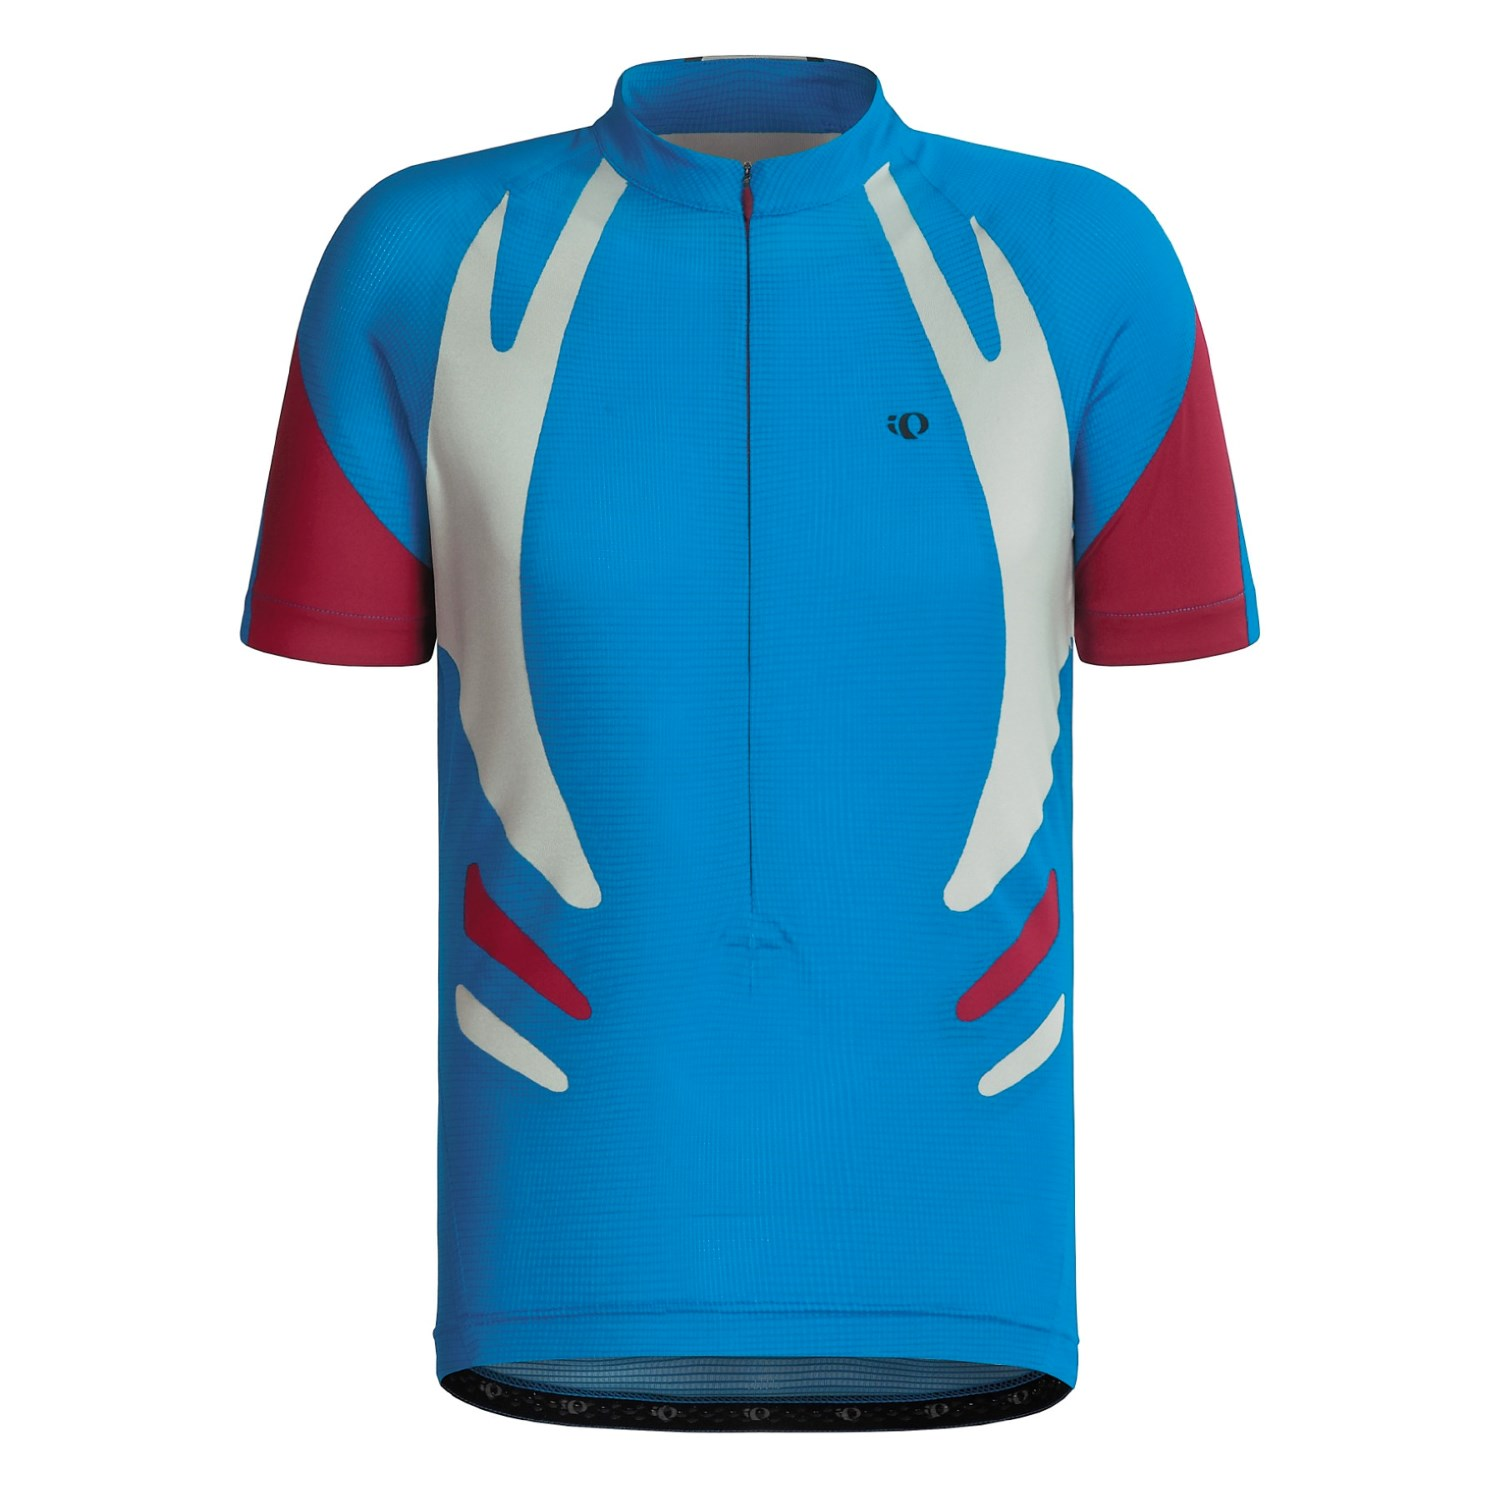 Pearl izumi octane cycling jersey for men 1053j save 66 for Pearl izumi cycling shirt